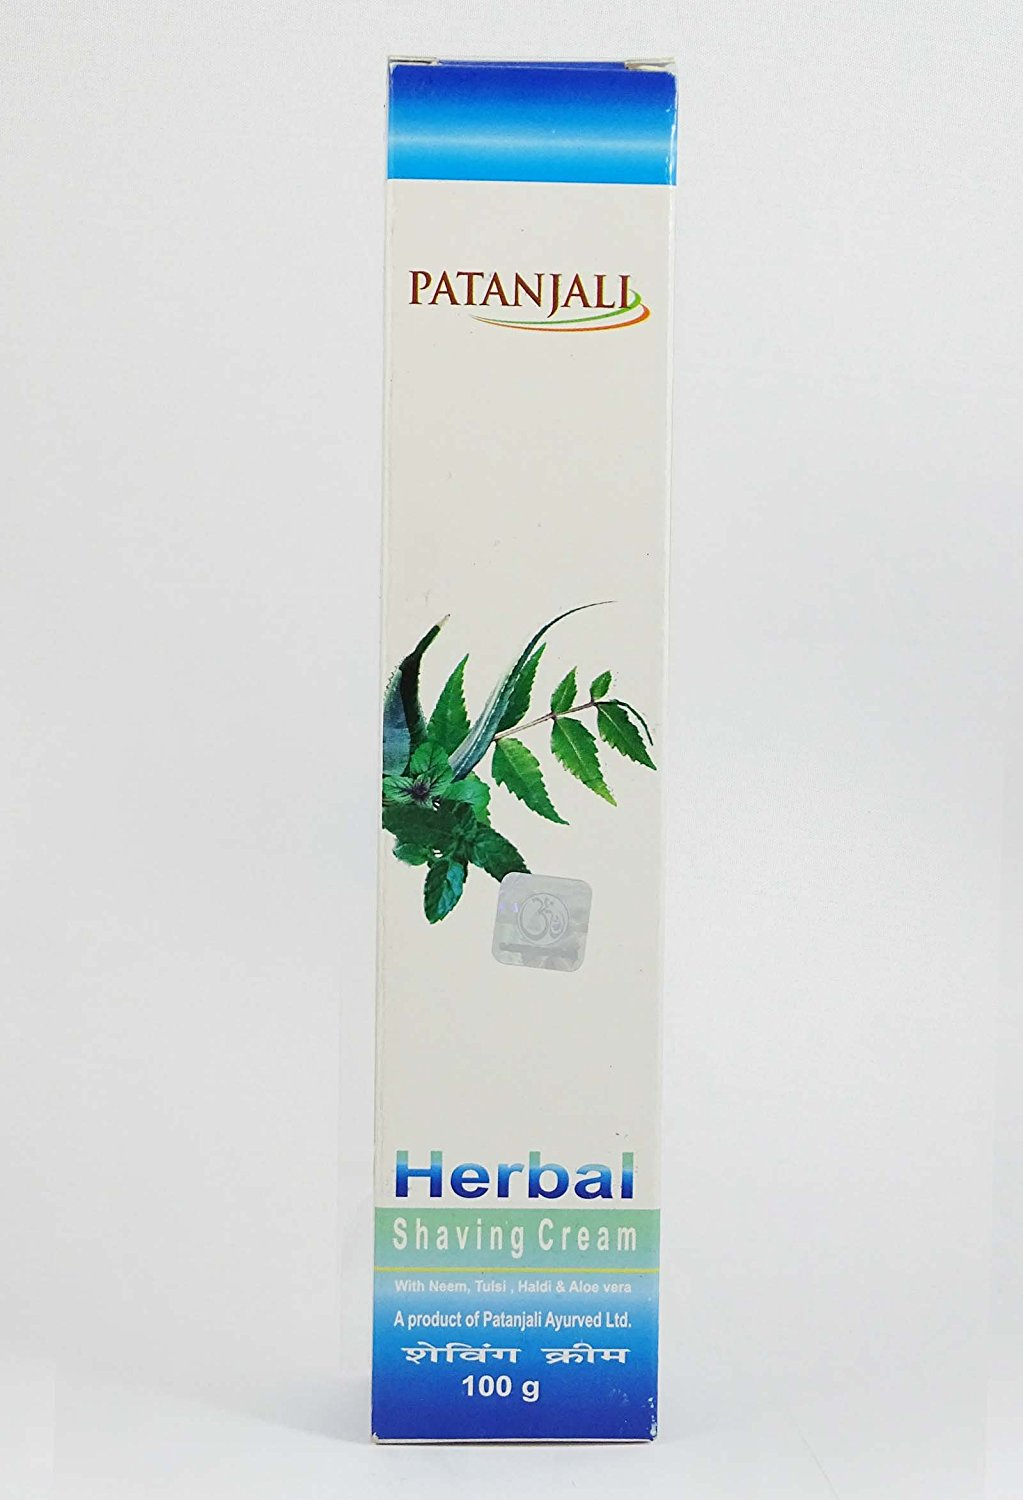 Patanjali Herbal Shaving Cream Image